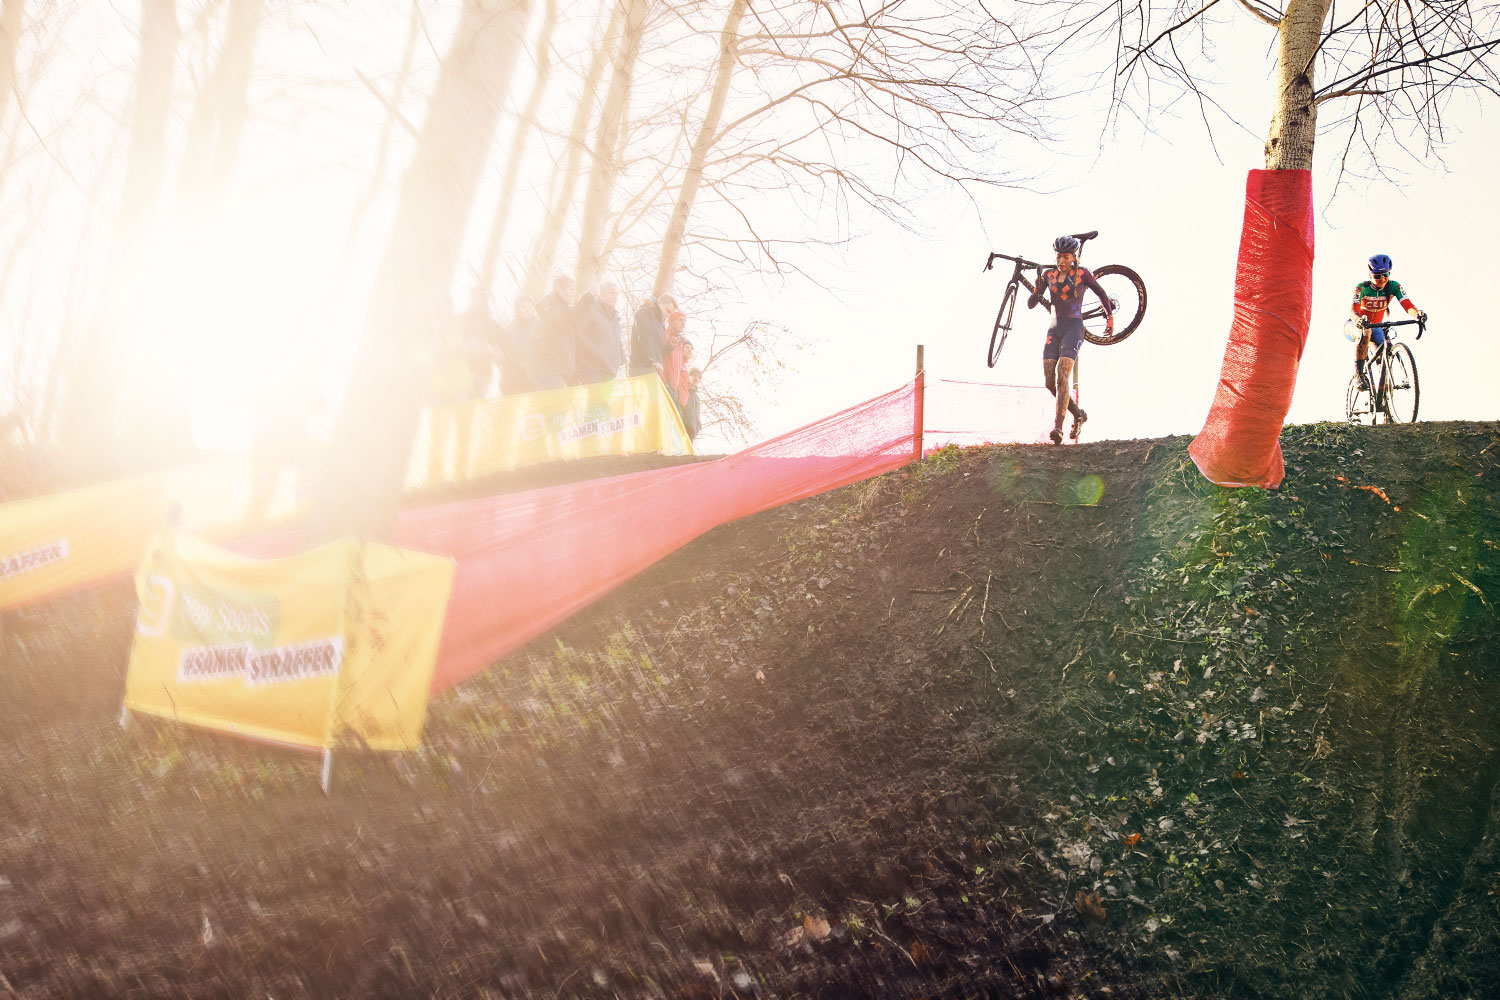 DanielZiegert_cyclocross_cyclingworld_02